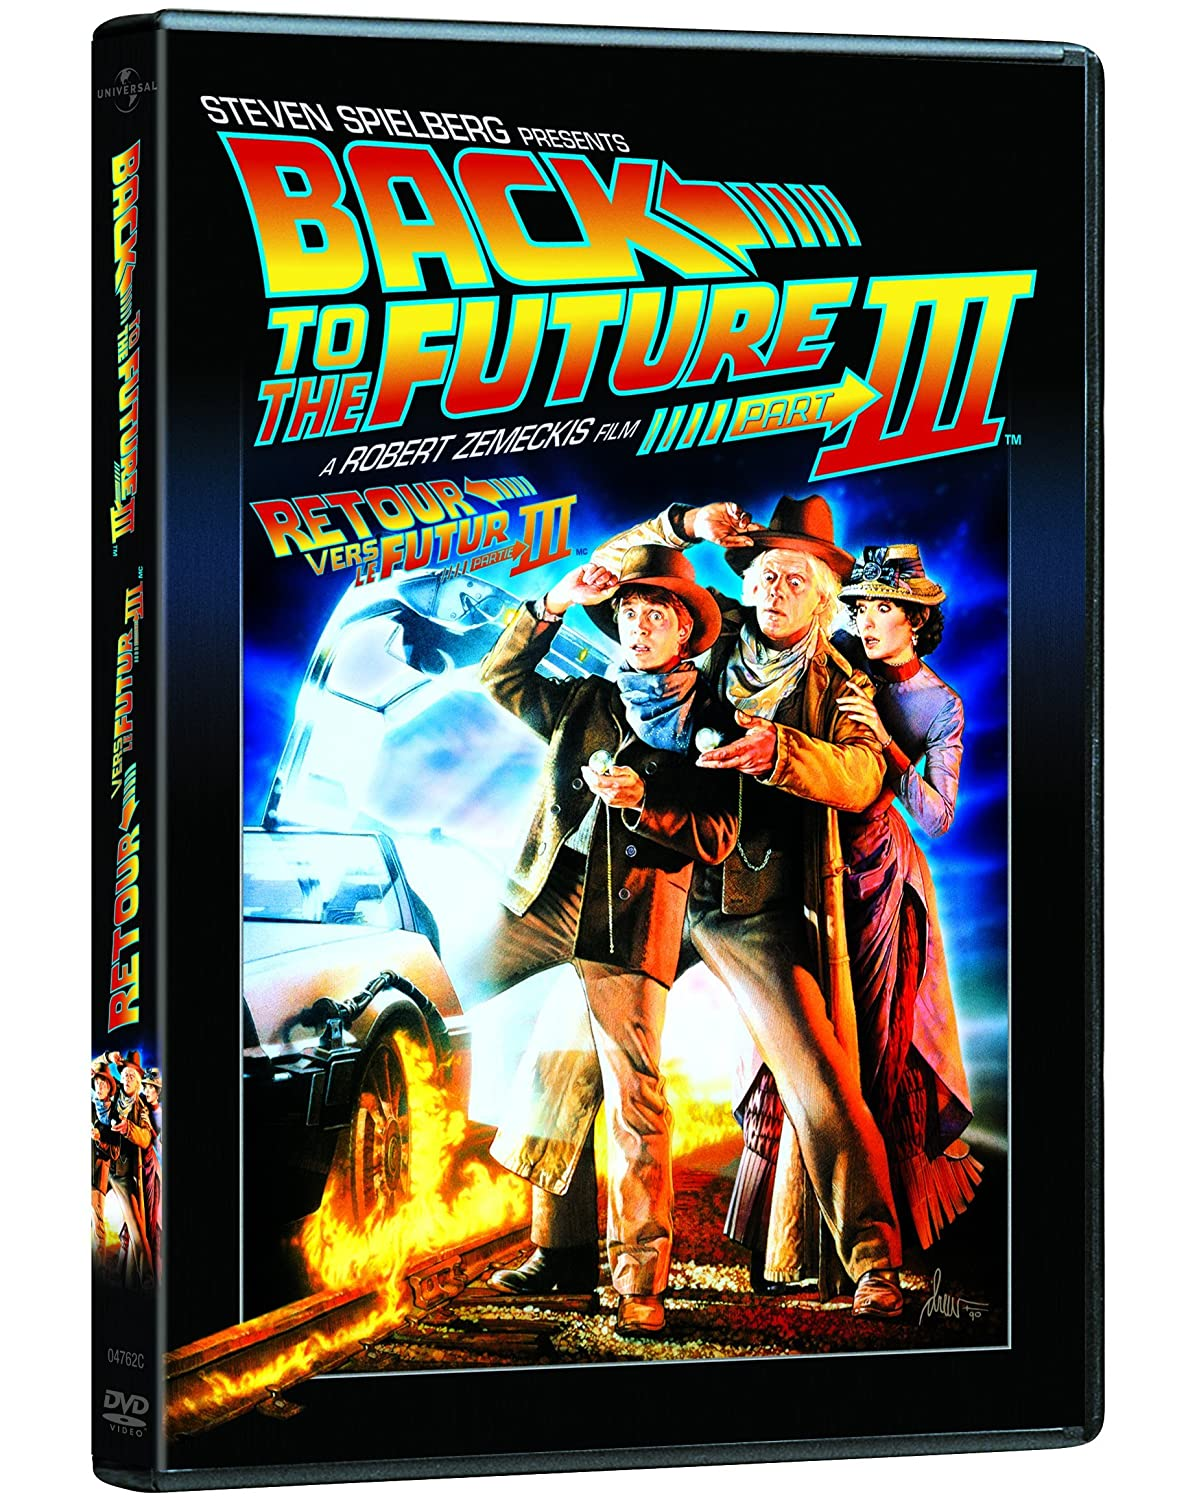 BACK TO THE FUTURE 3 B001LXIDVS